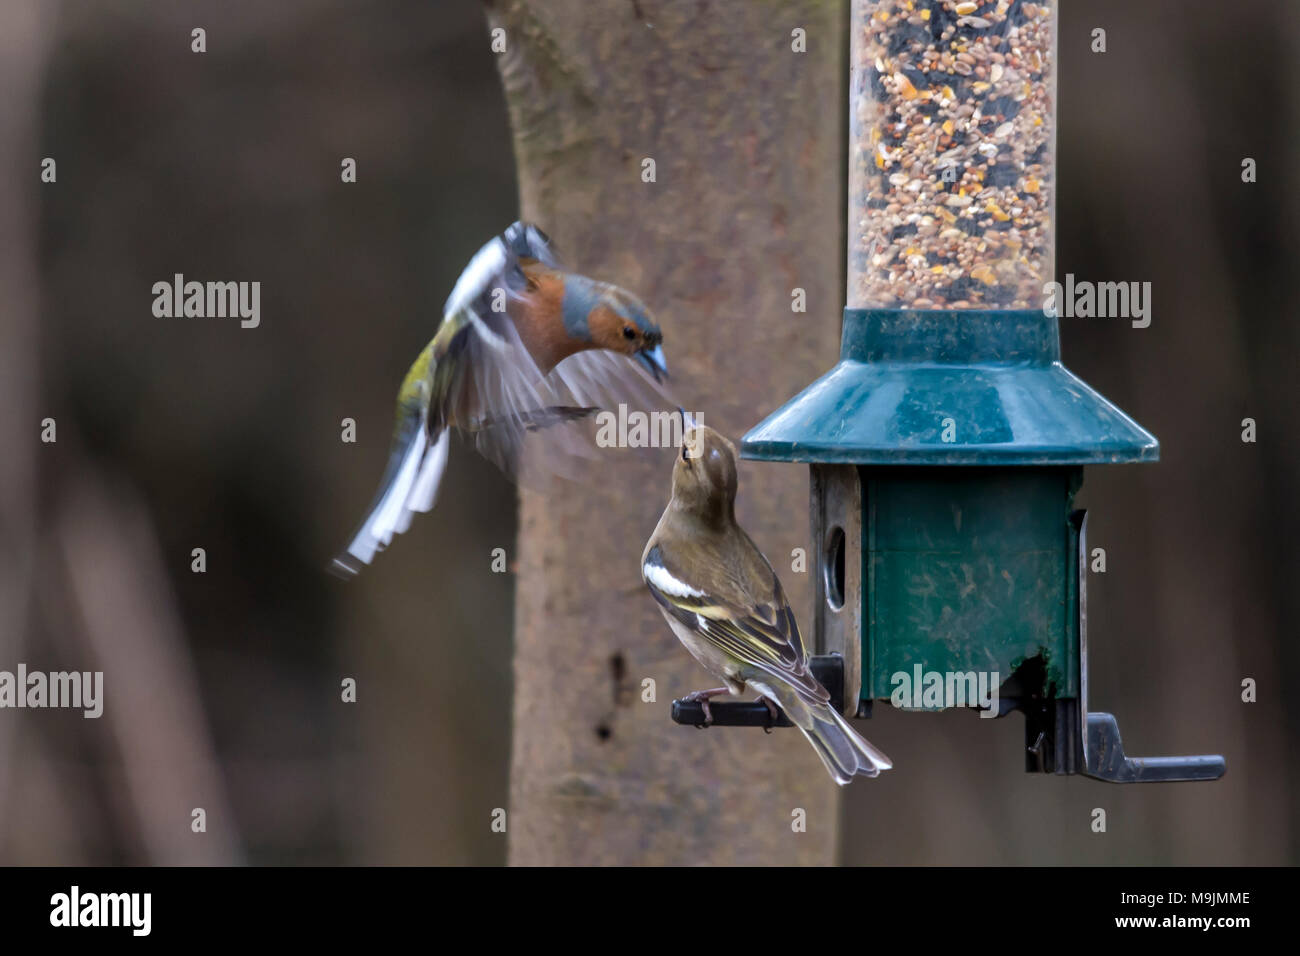 Rutland Water, Oakham. 26th Mar, 2018. Busy sunny day on the reserve with Blue skys  for visitors to the Lynton center and nature reserve, visitors enjoy live cam of the Ospreys after their  return from wintering in Africa. Clifford Norton Alamy Live News. Credit: Clifford Norton/Alamy Live News - Stock Image